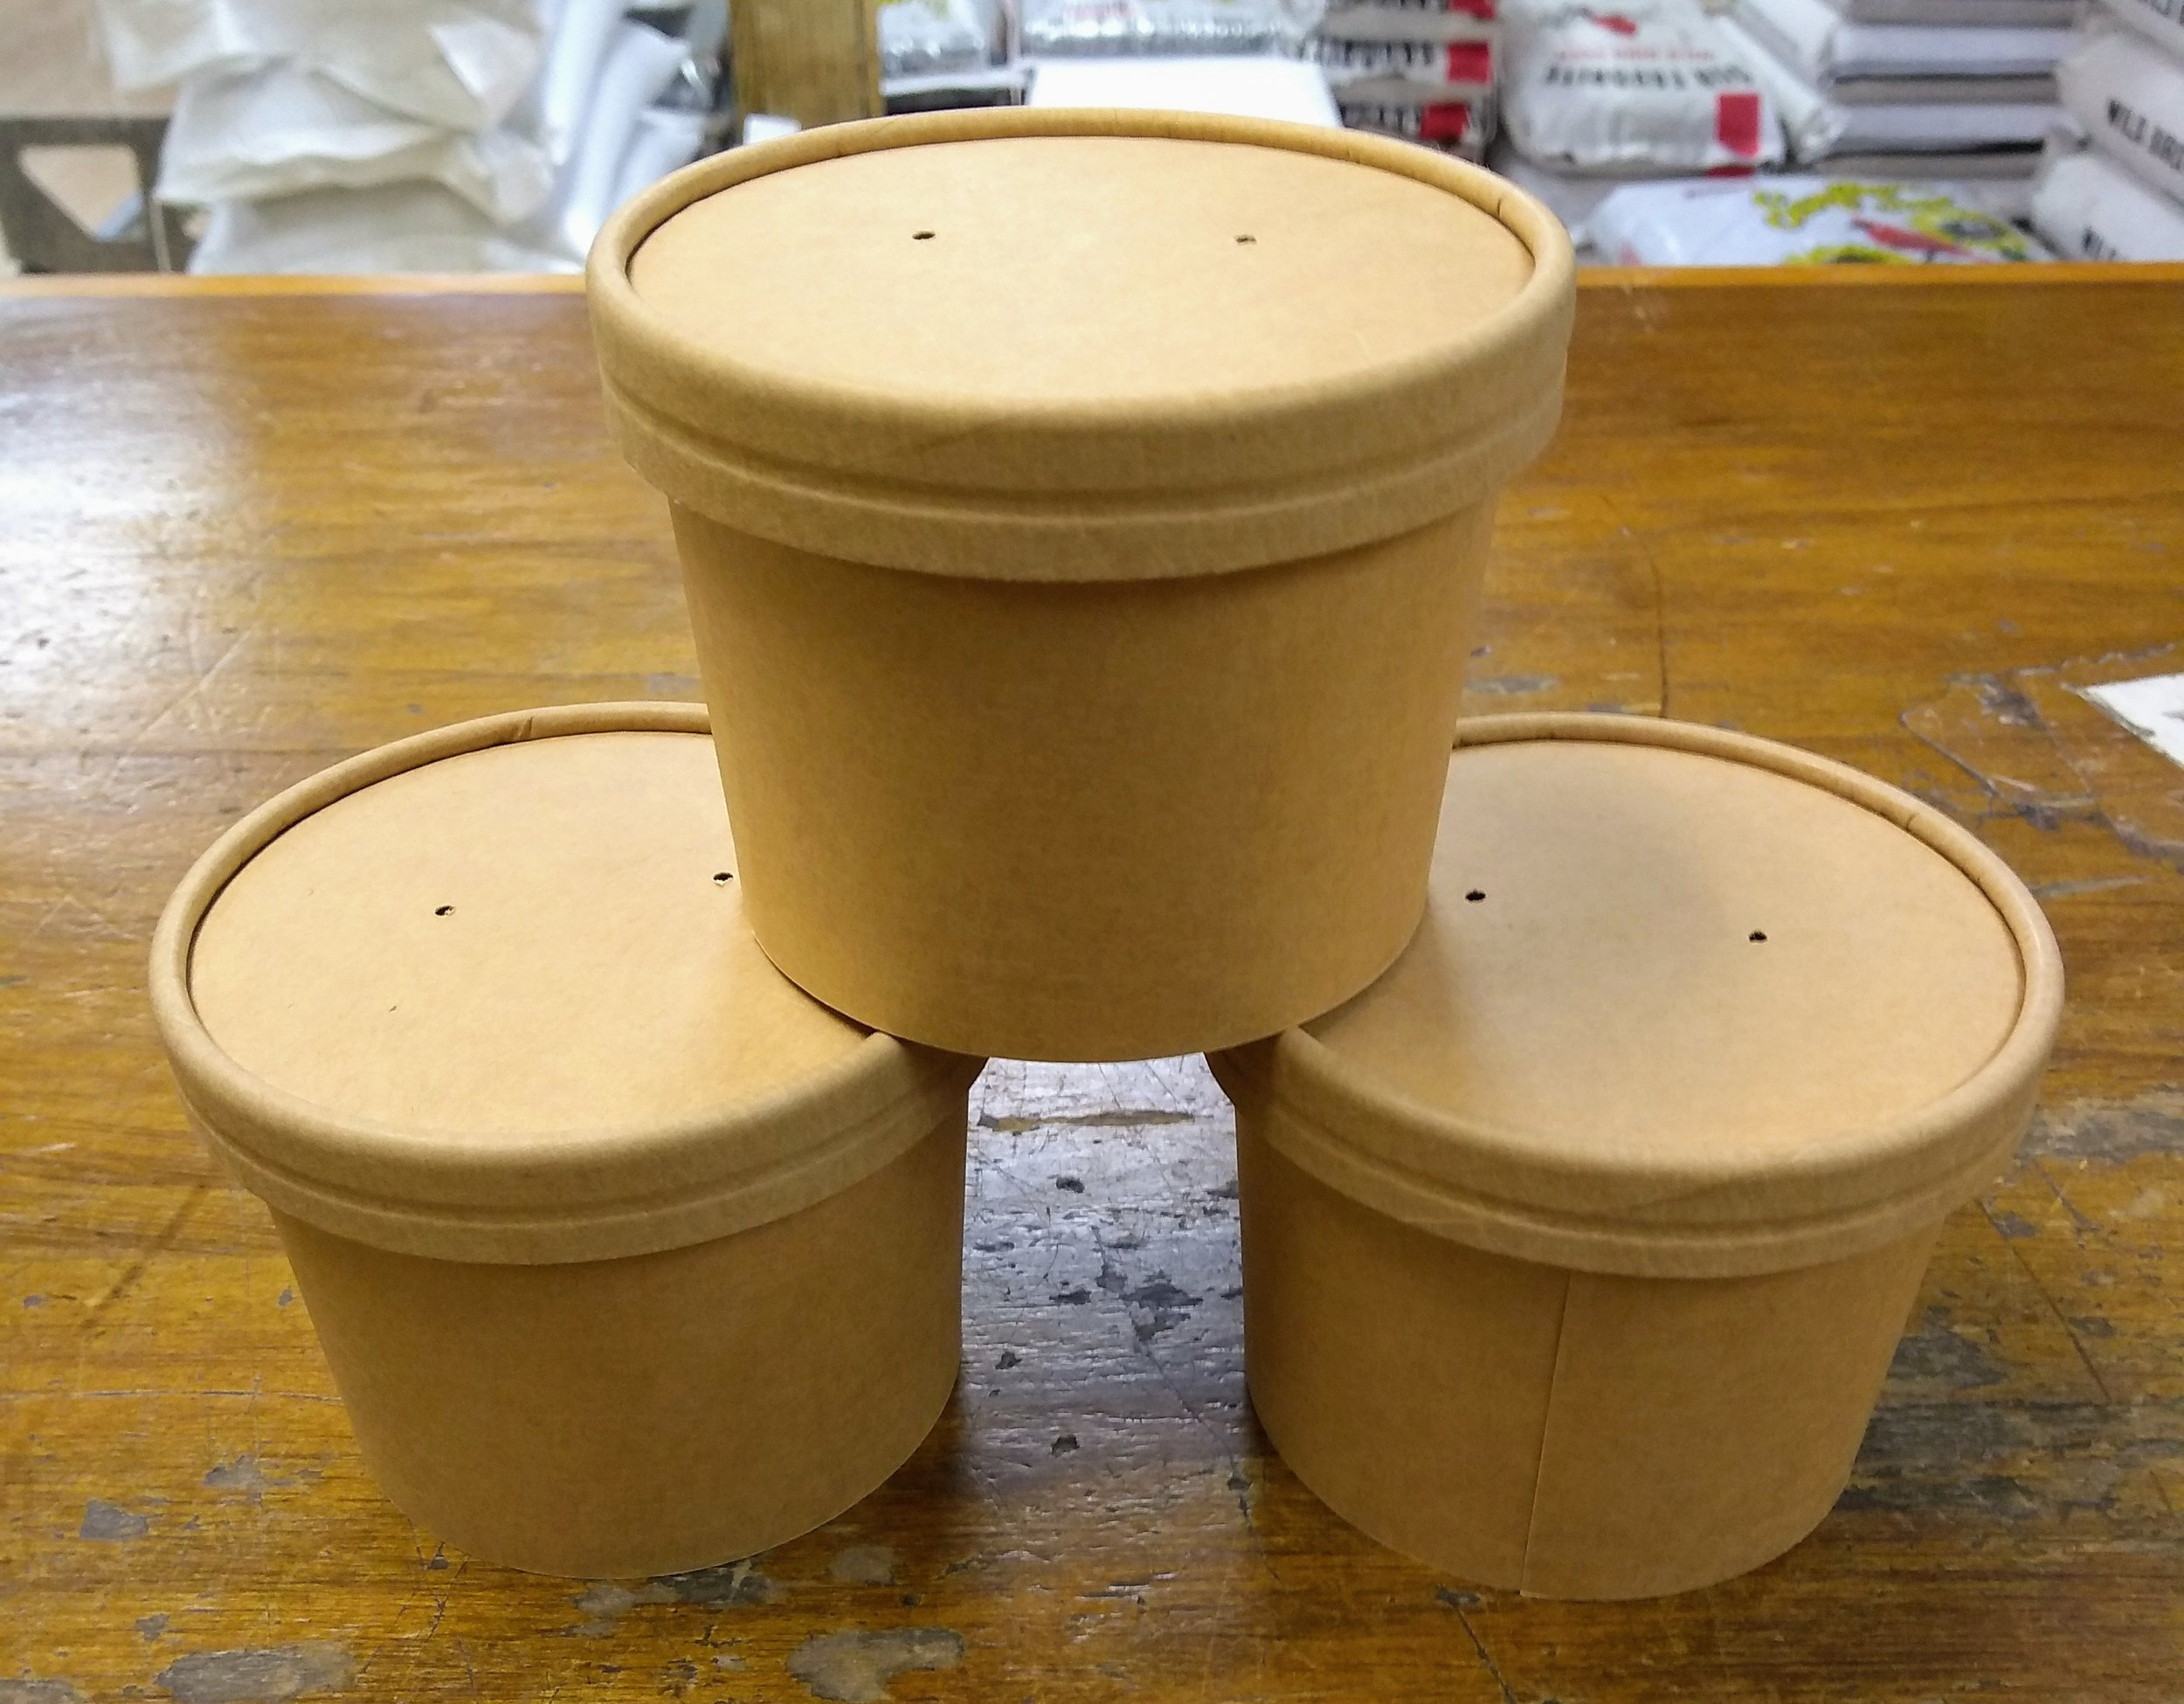 New biodegradable mealworm containers.